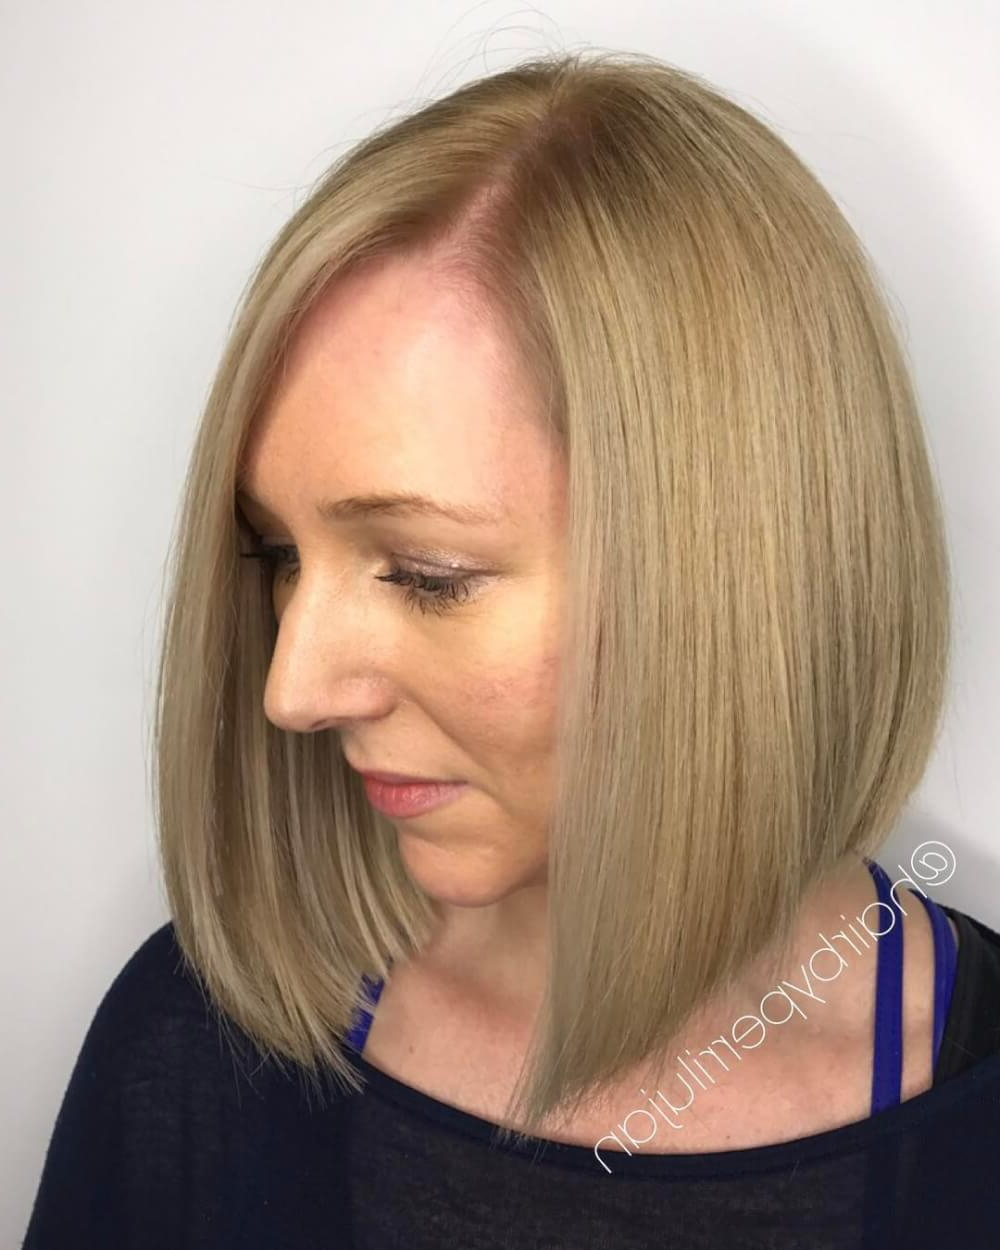 49 Chic Short Bob Hairstyles & Haircuts For Women In 2018 In Frizzy Razored White Blonde Bob Haircuts (View 9 of 20)